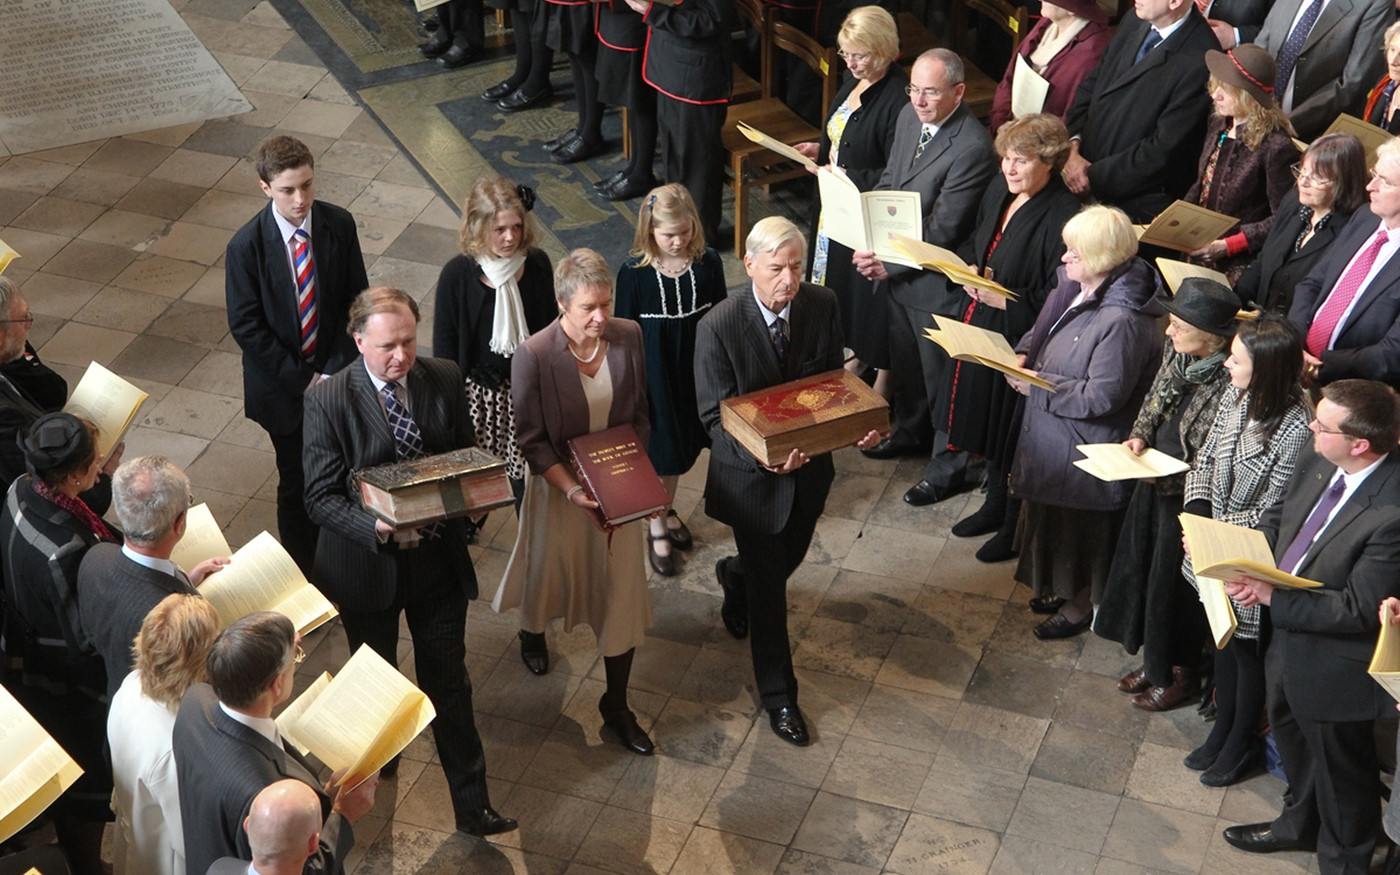 Four historic copies of the King James Bible and the People's Bible were processed through the Abbey at the start of the service.